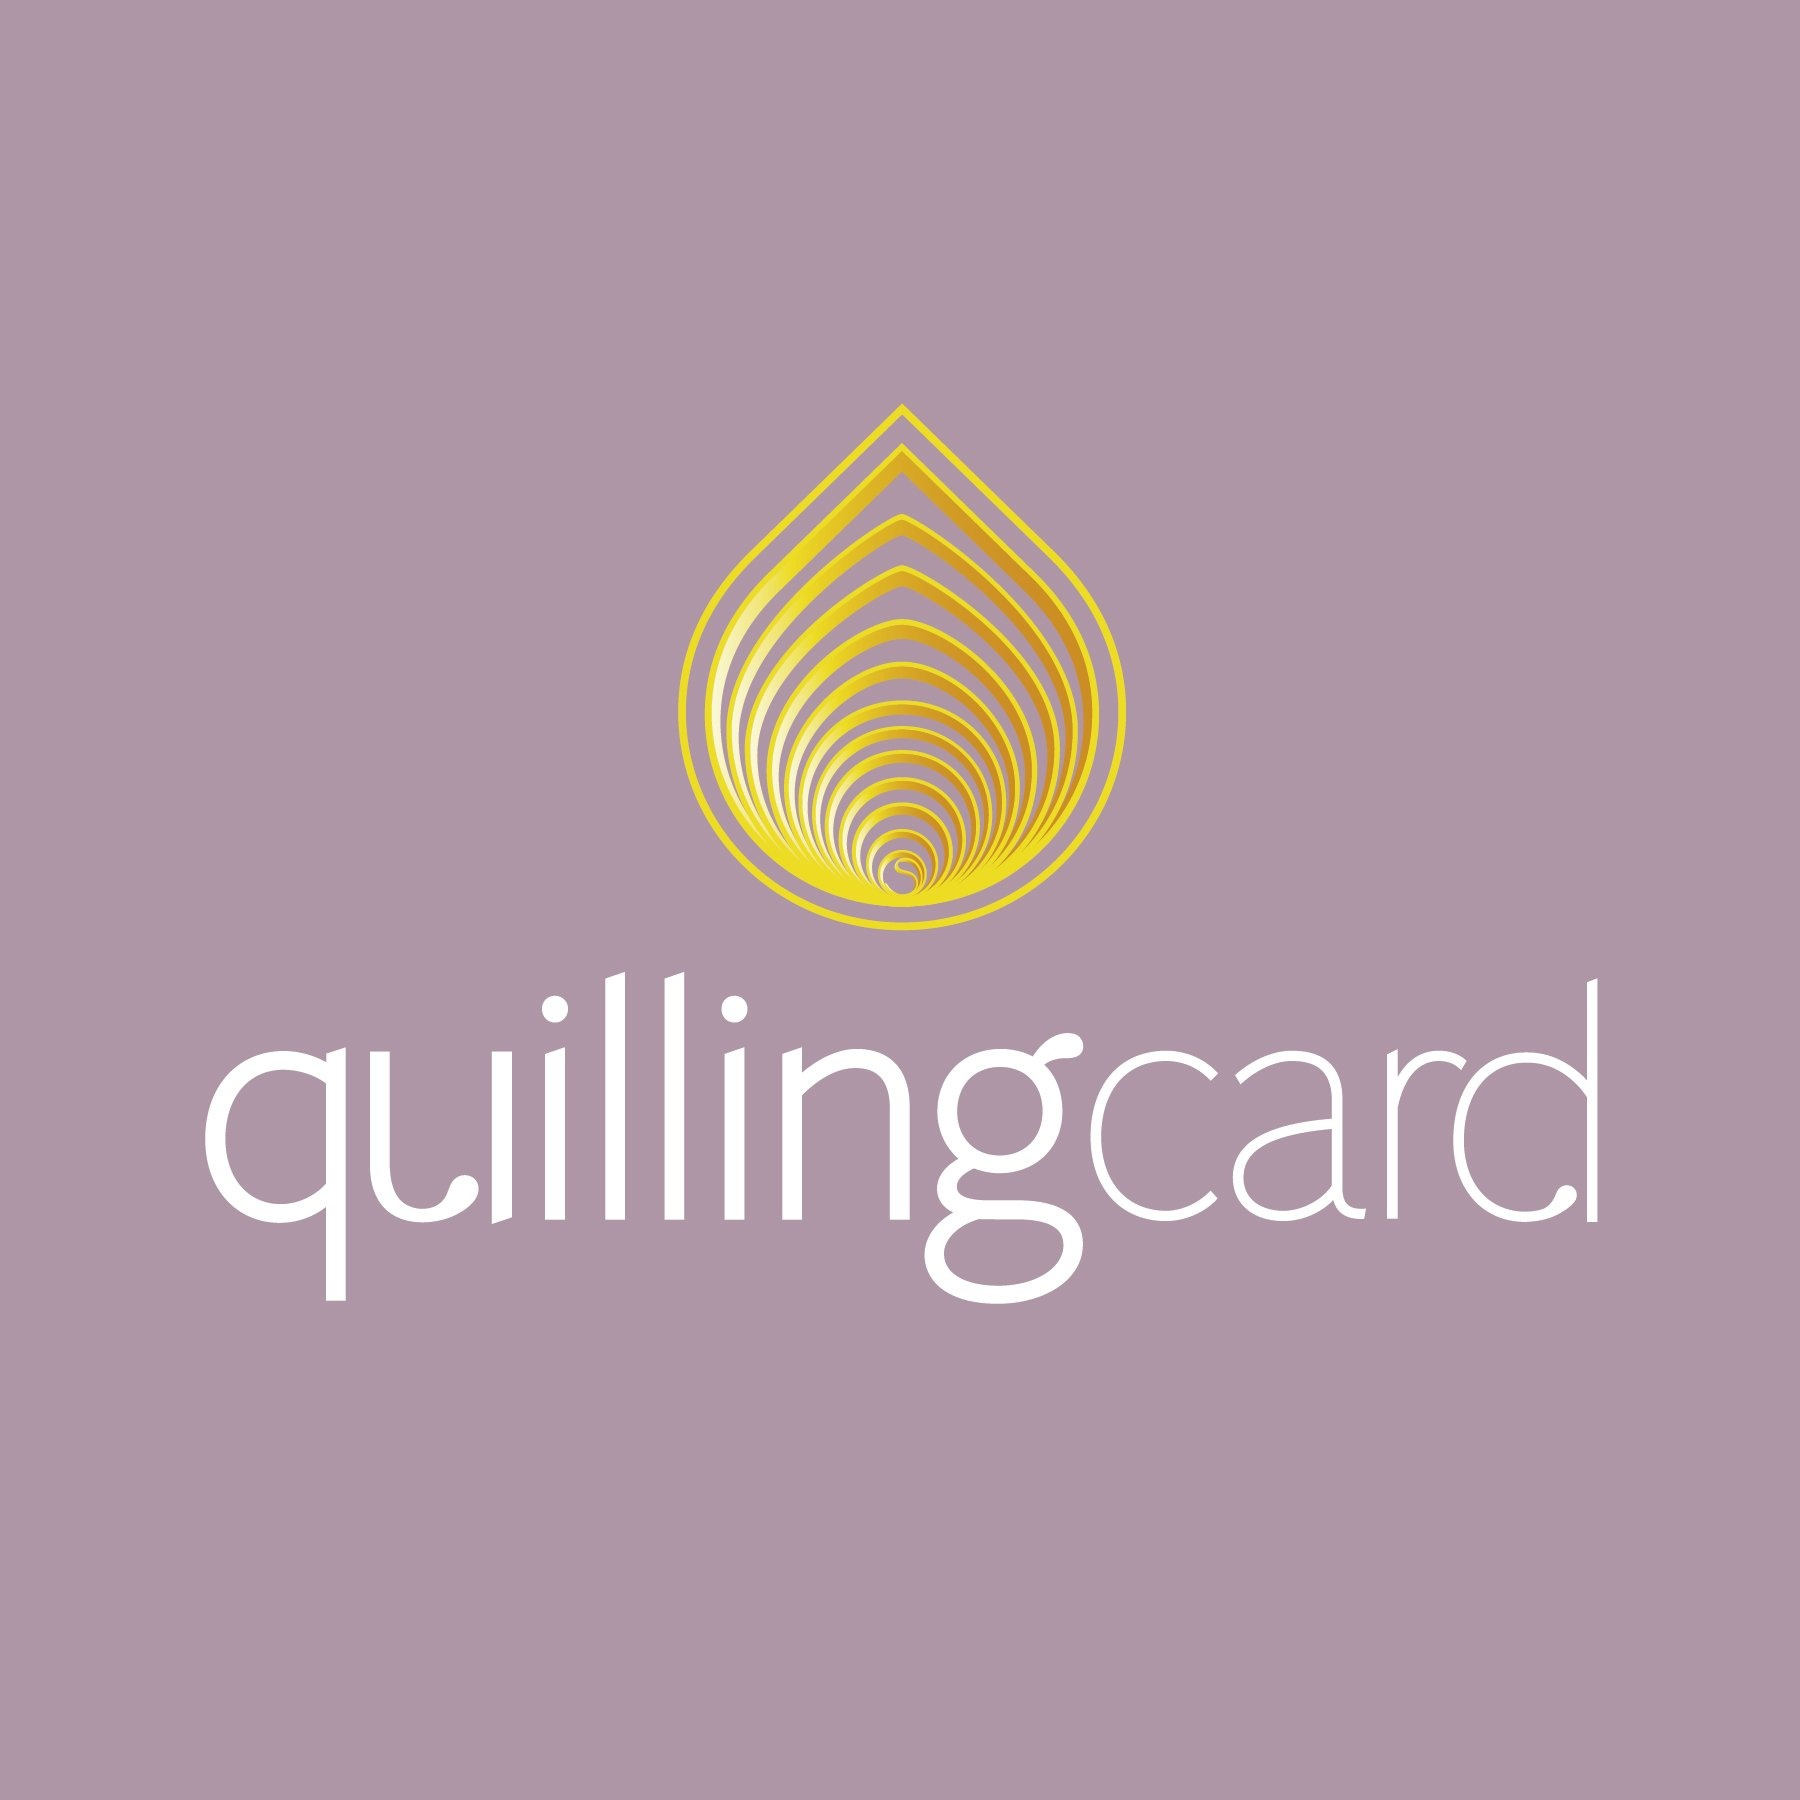 Meet our Vendors - Quilling Card